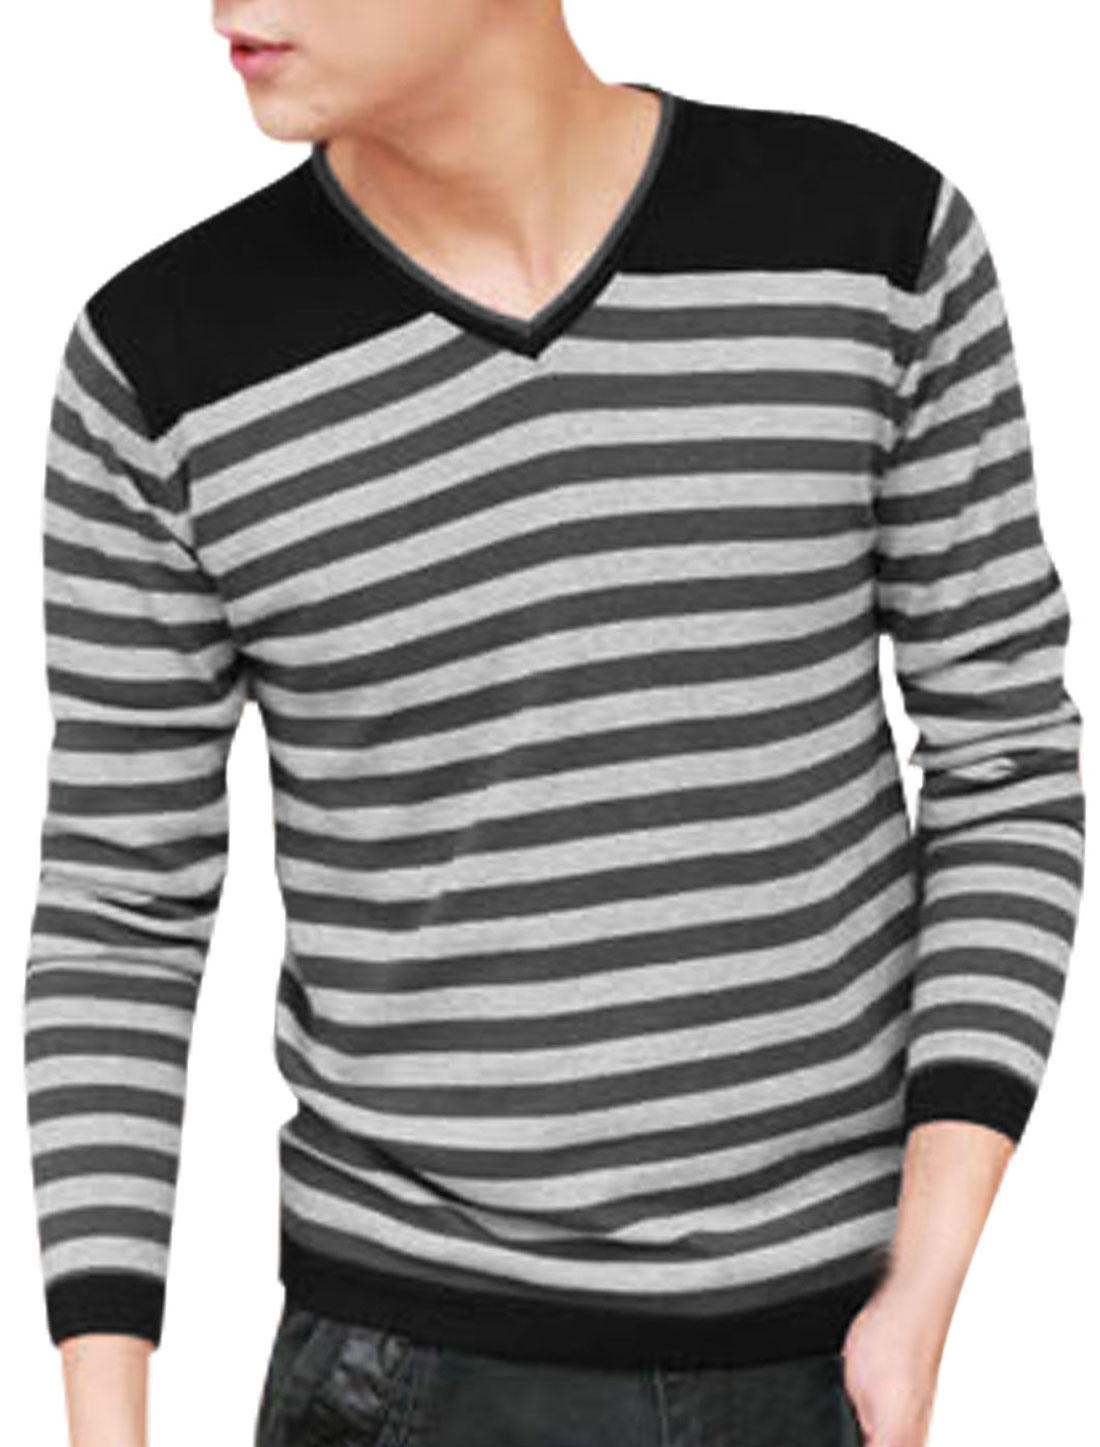 Men Long Sleeve Bar Striped Leisure Knitted Shirt Gray Black M